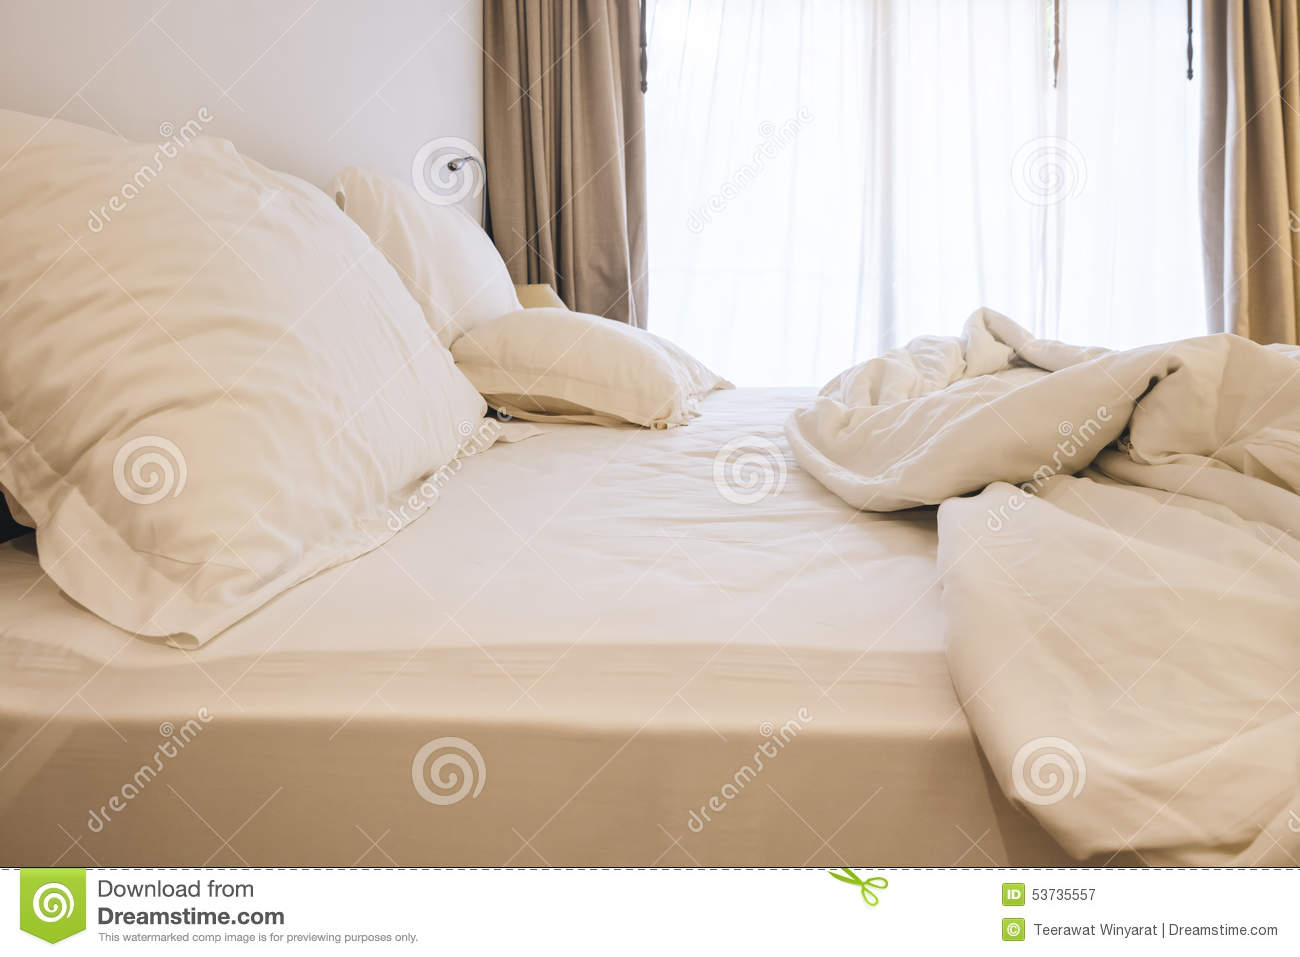 When Is The Best Time To Buy Bed Pillows